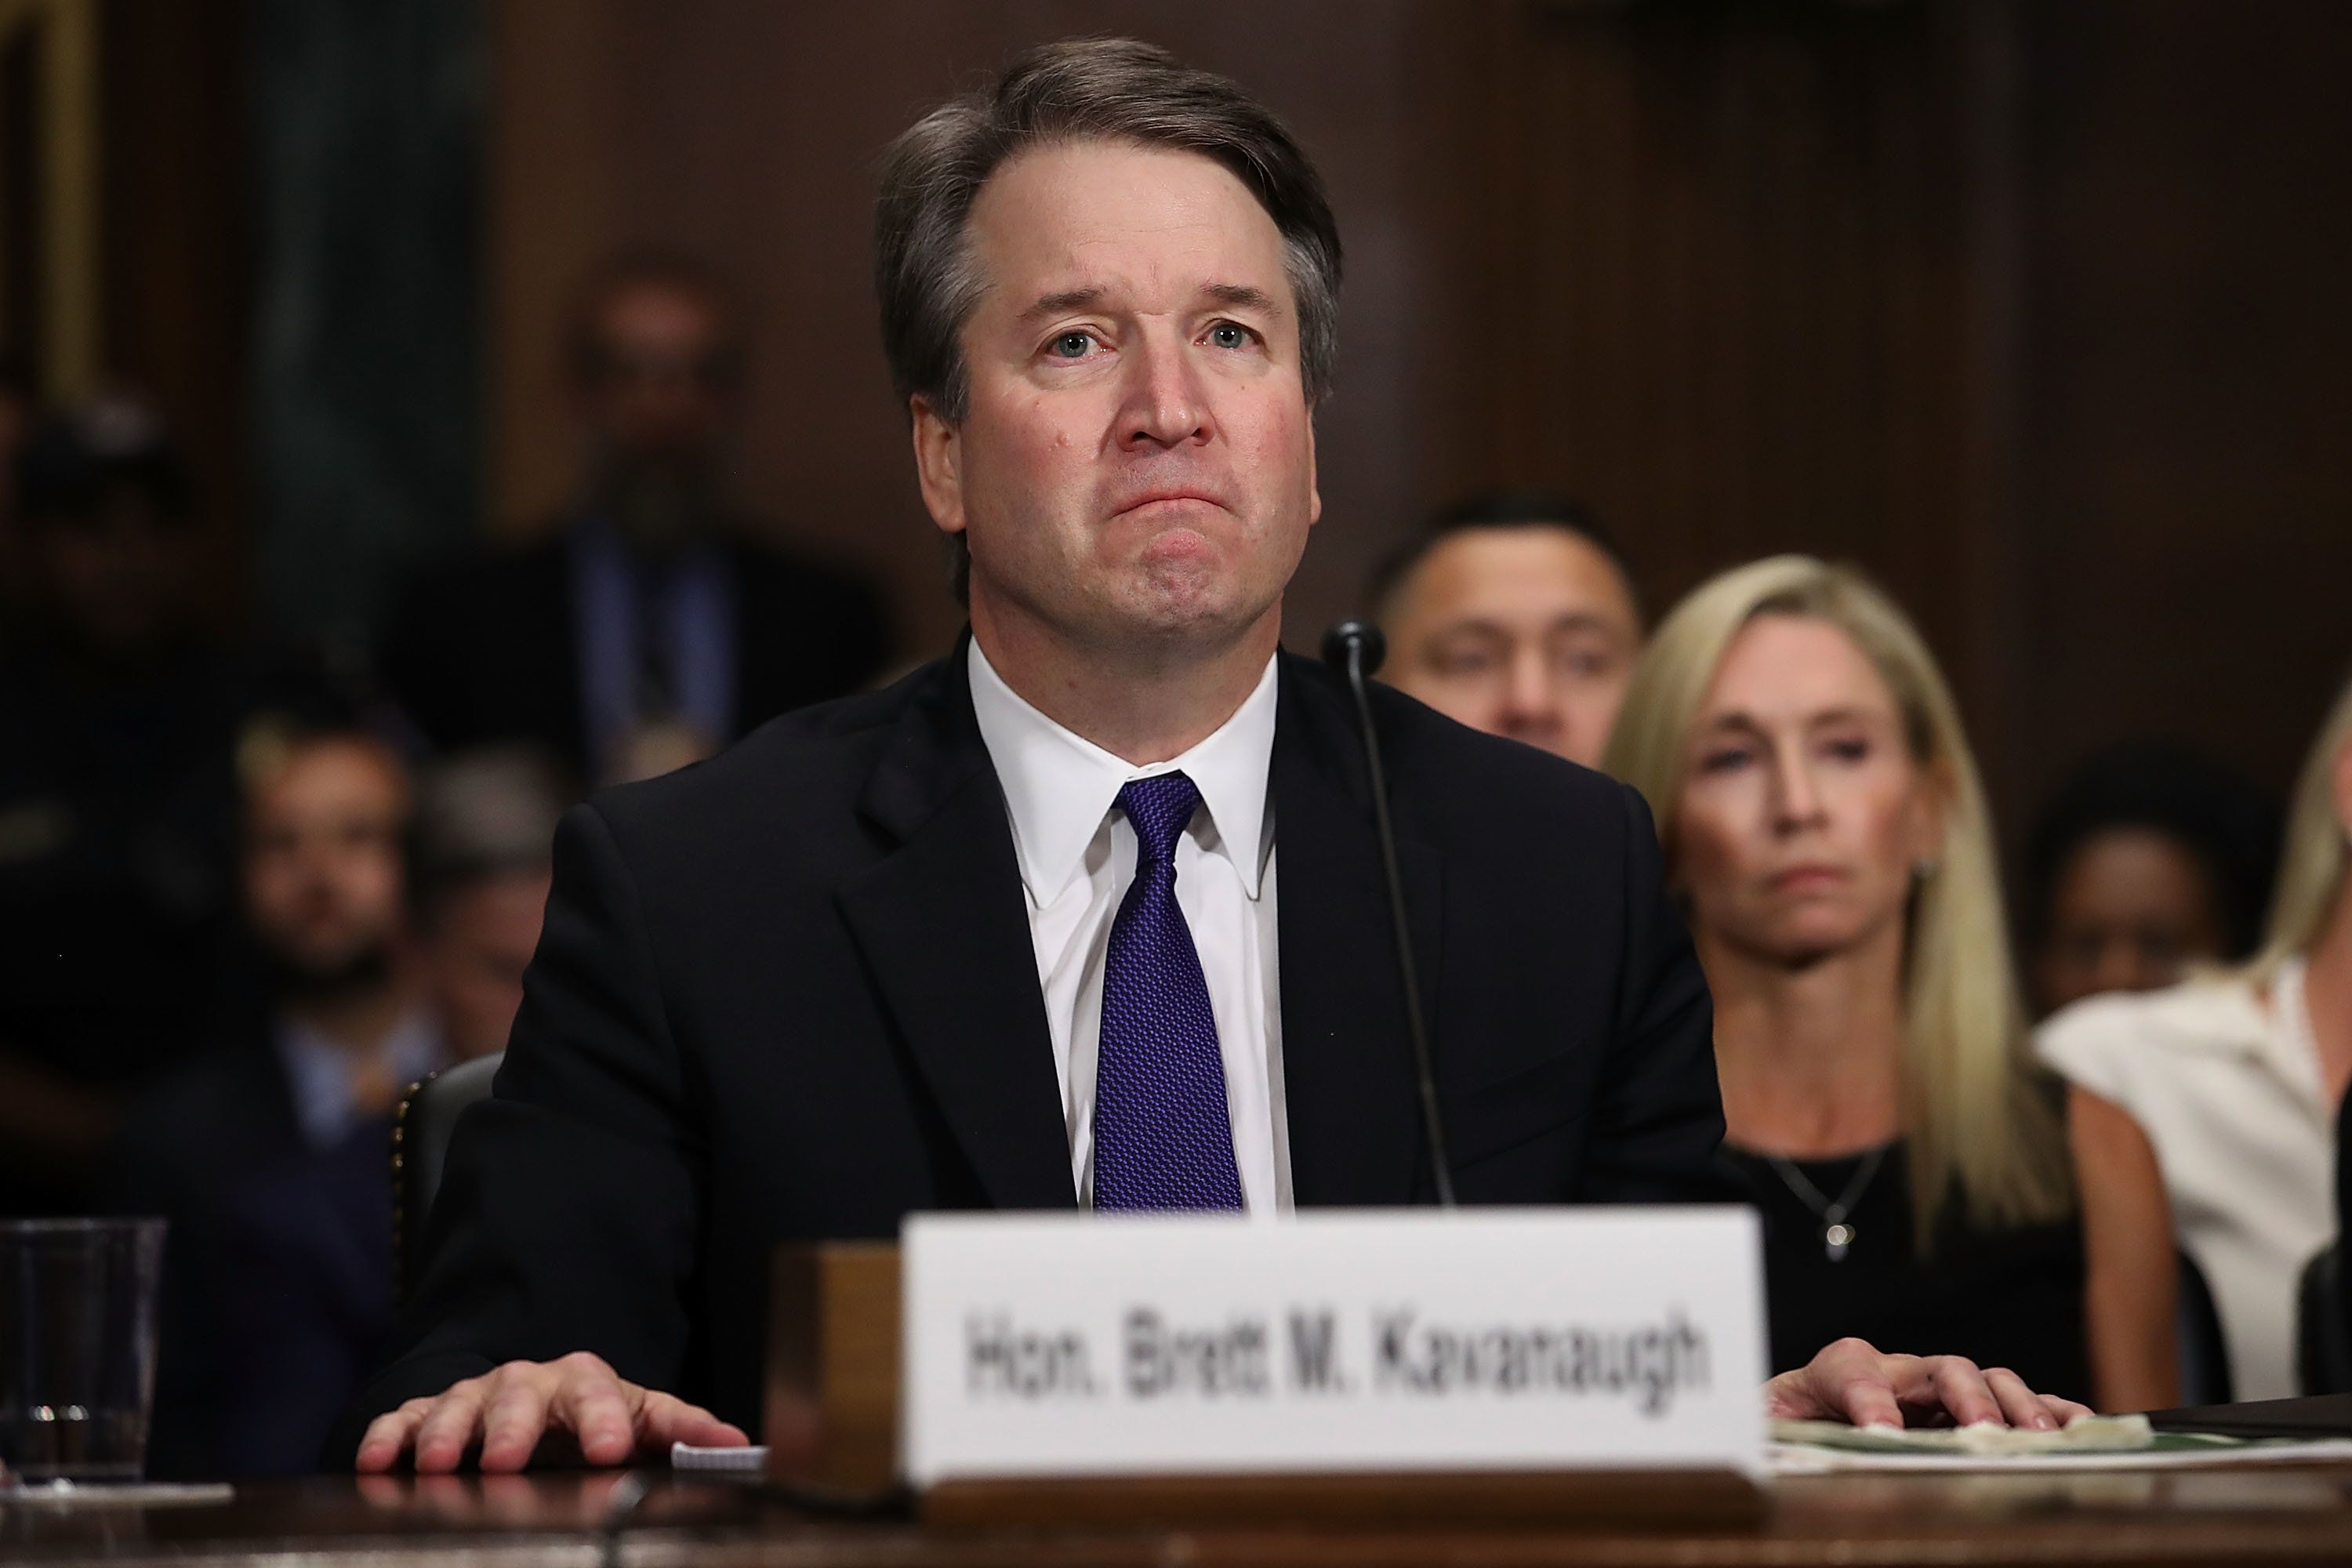 US Senate holds hearing on Kavanaugh's sexual assault allegations